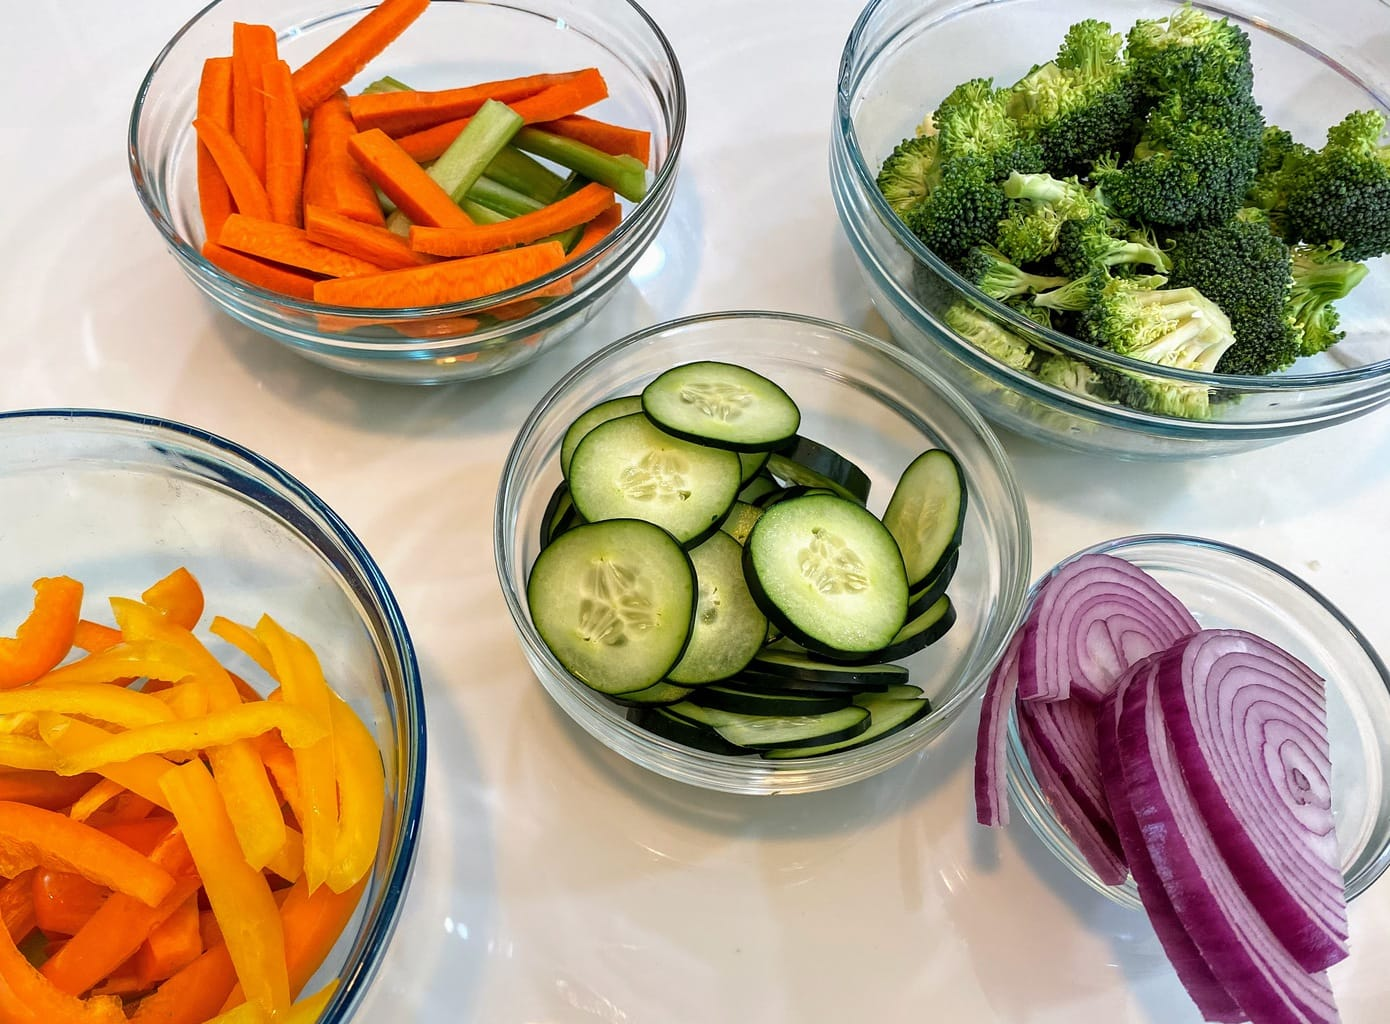 clear glass bowls of different, cut veggies on a white table